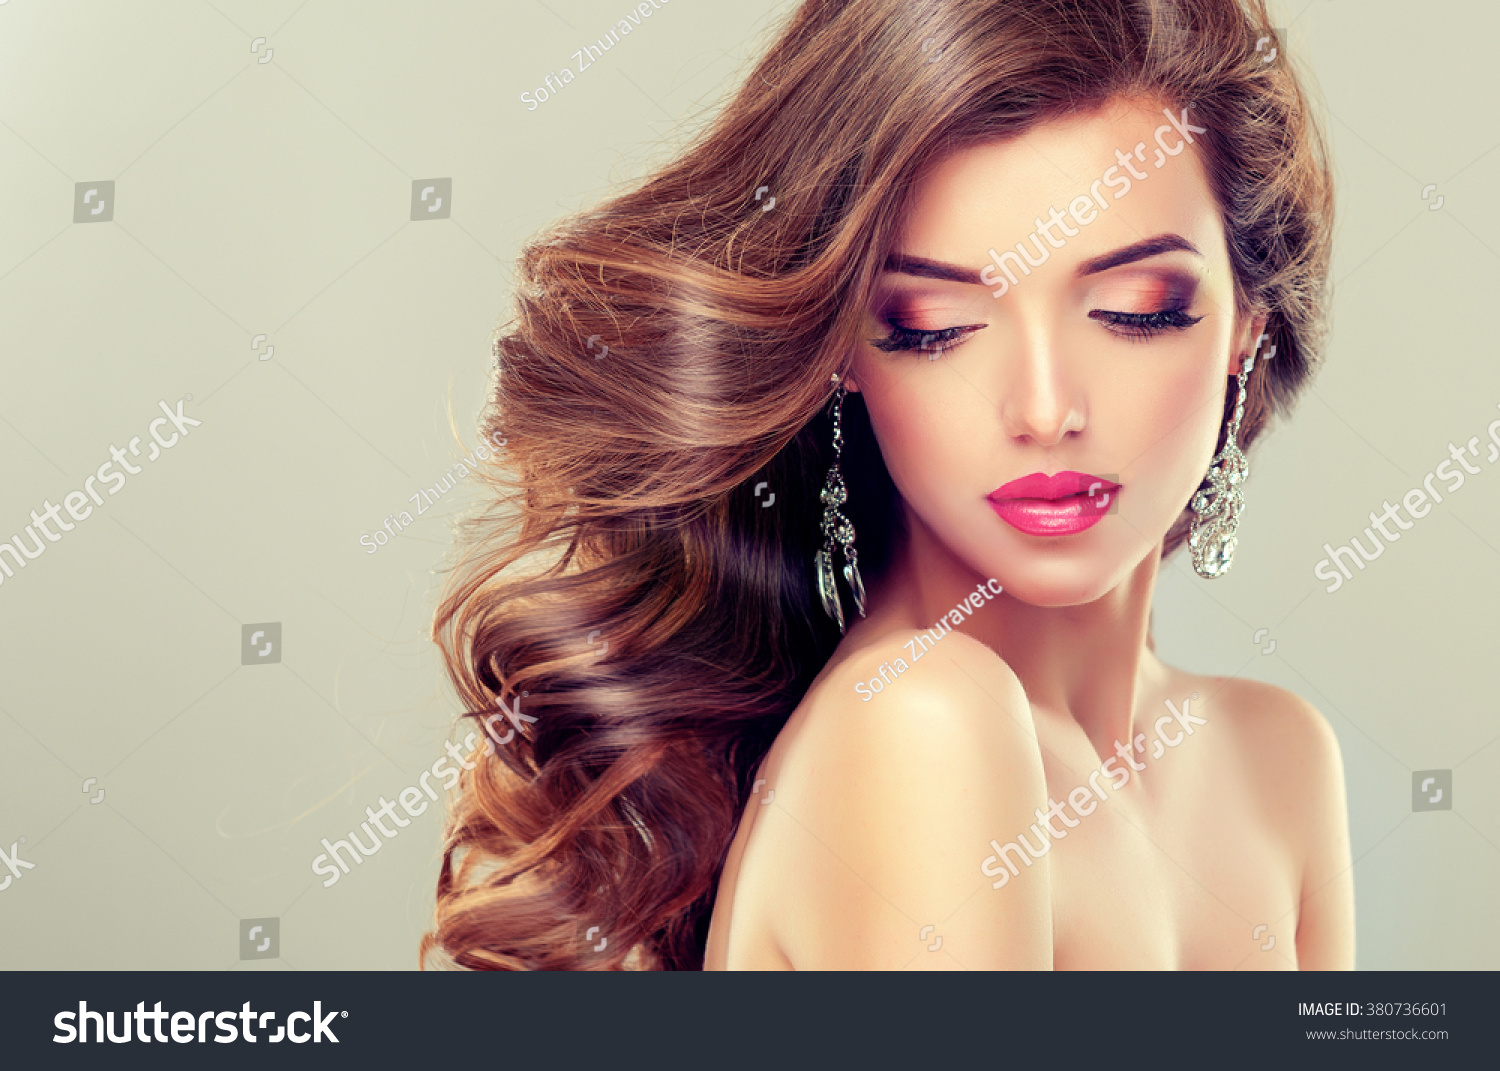 Beautiful Model Brunette Long Curled Hair Stock Photo ...